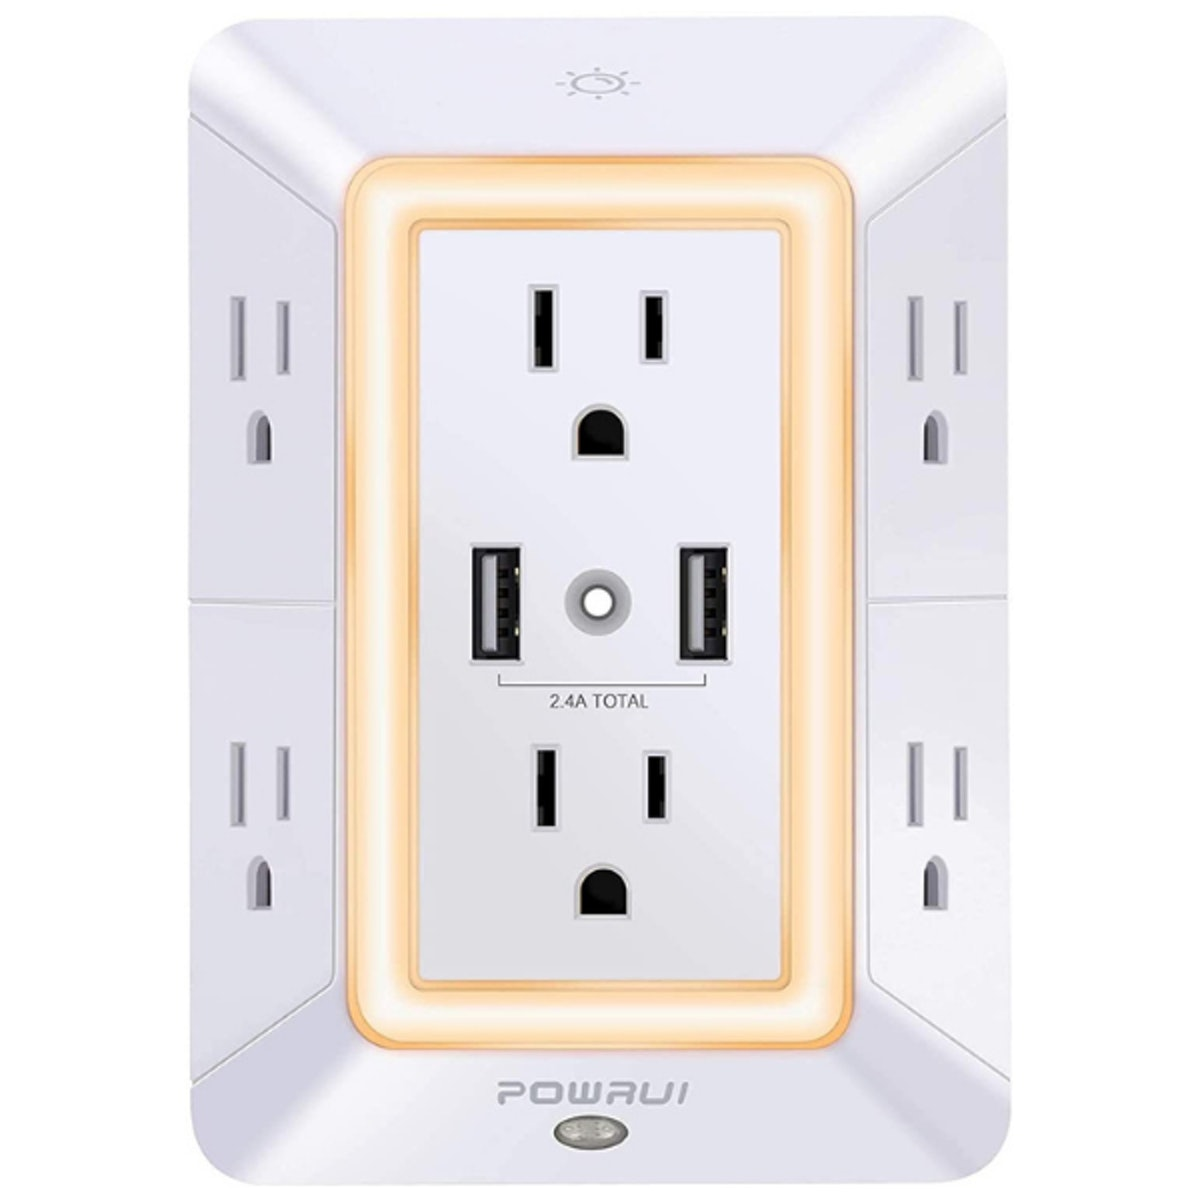 POWRUI 6-Outlet Extender with 2 USB Charging Ports